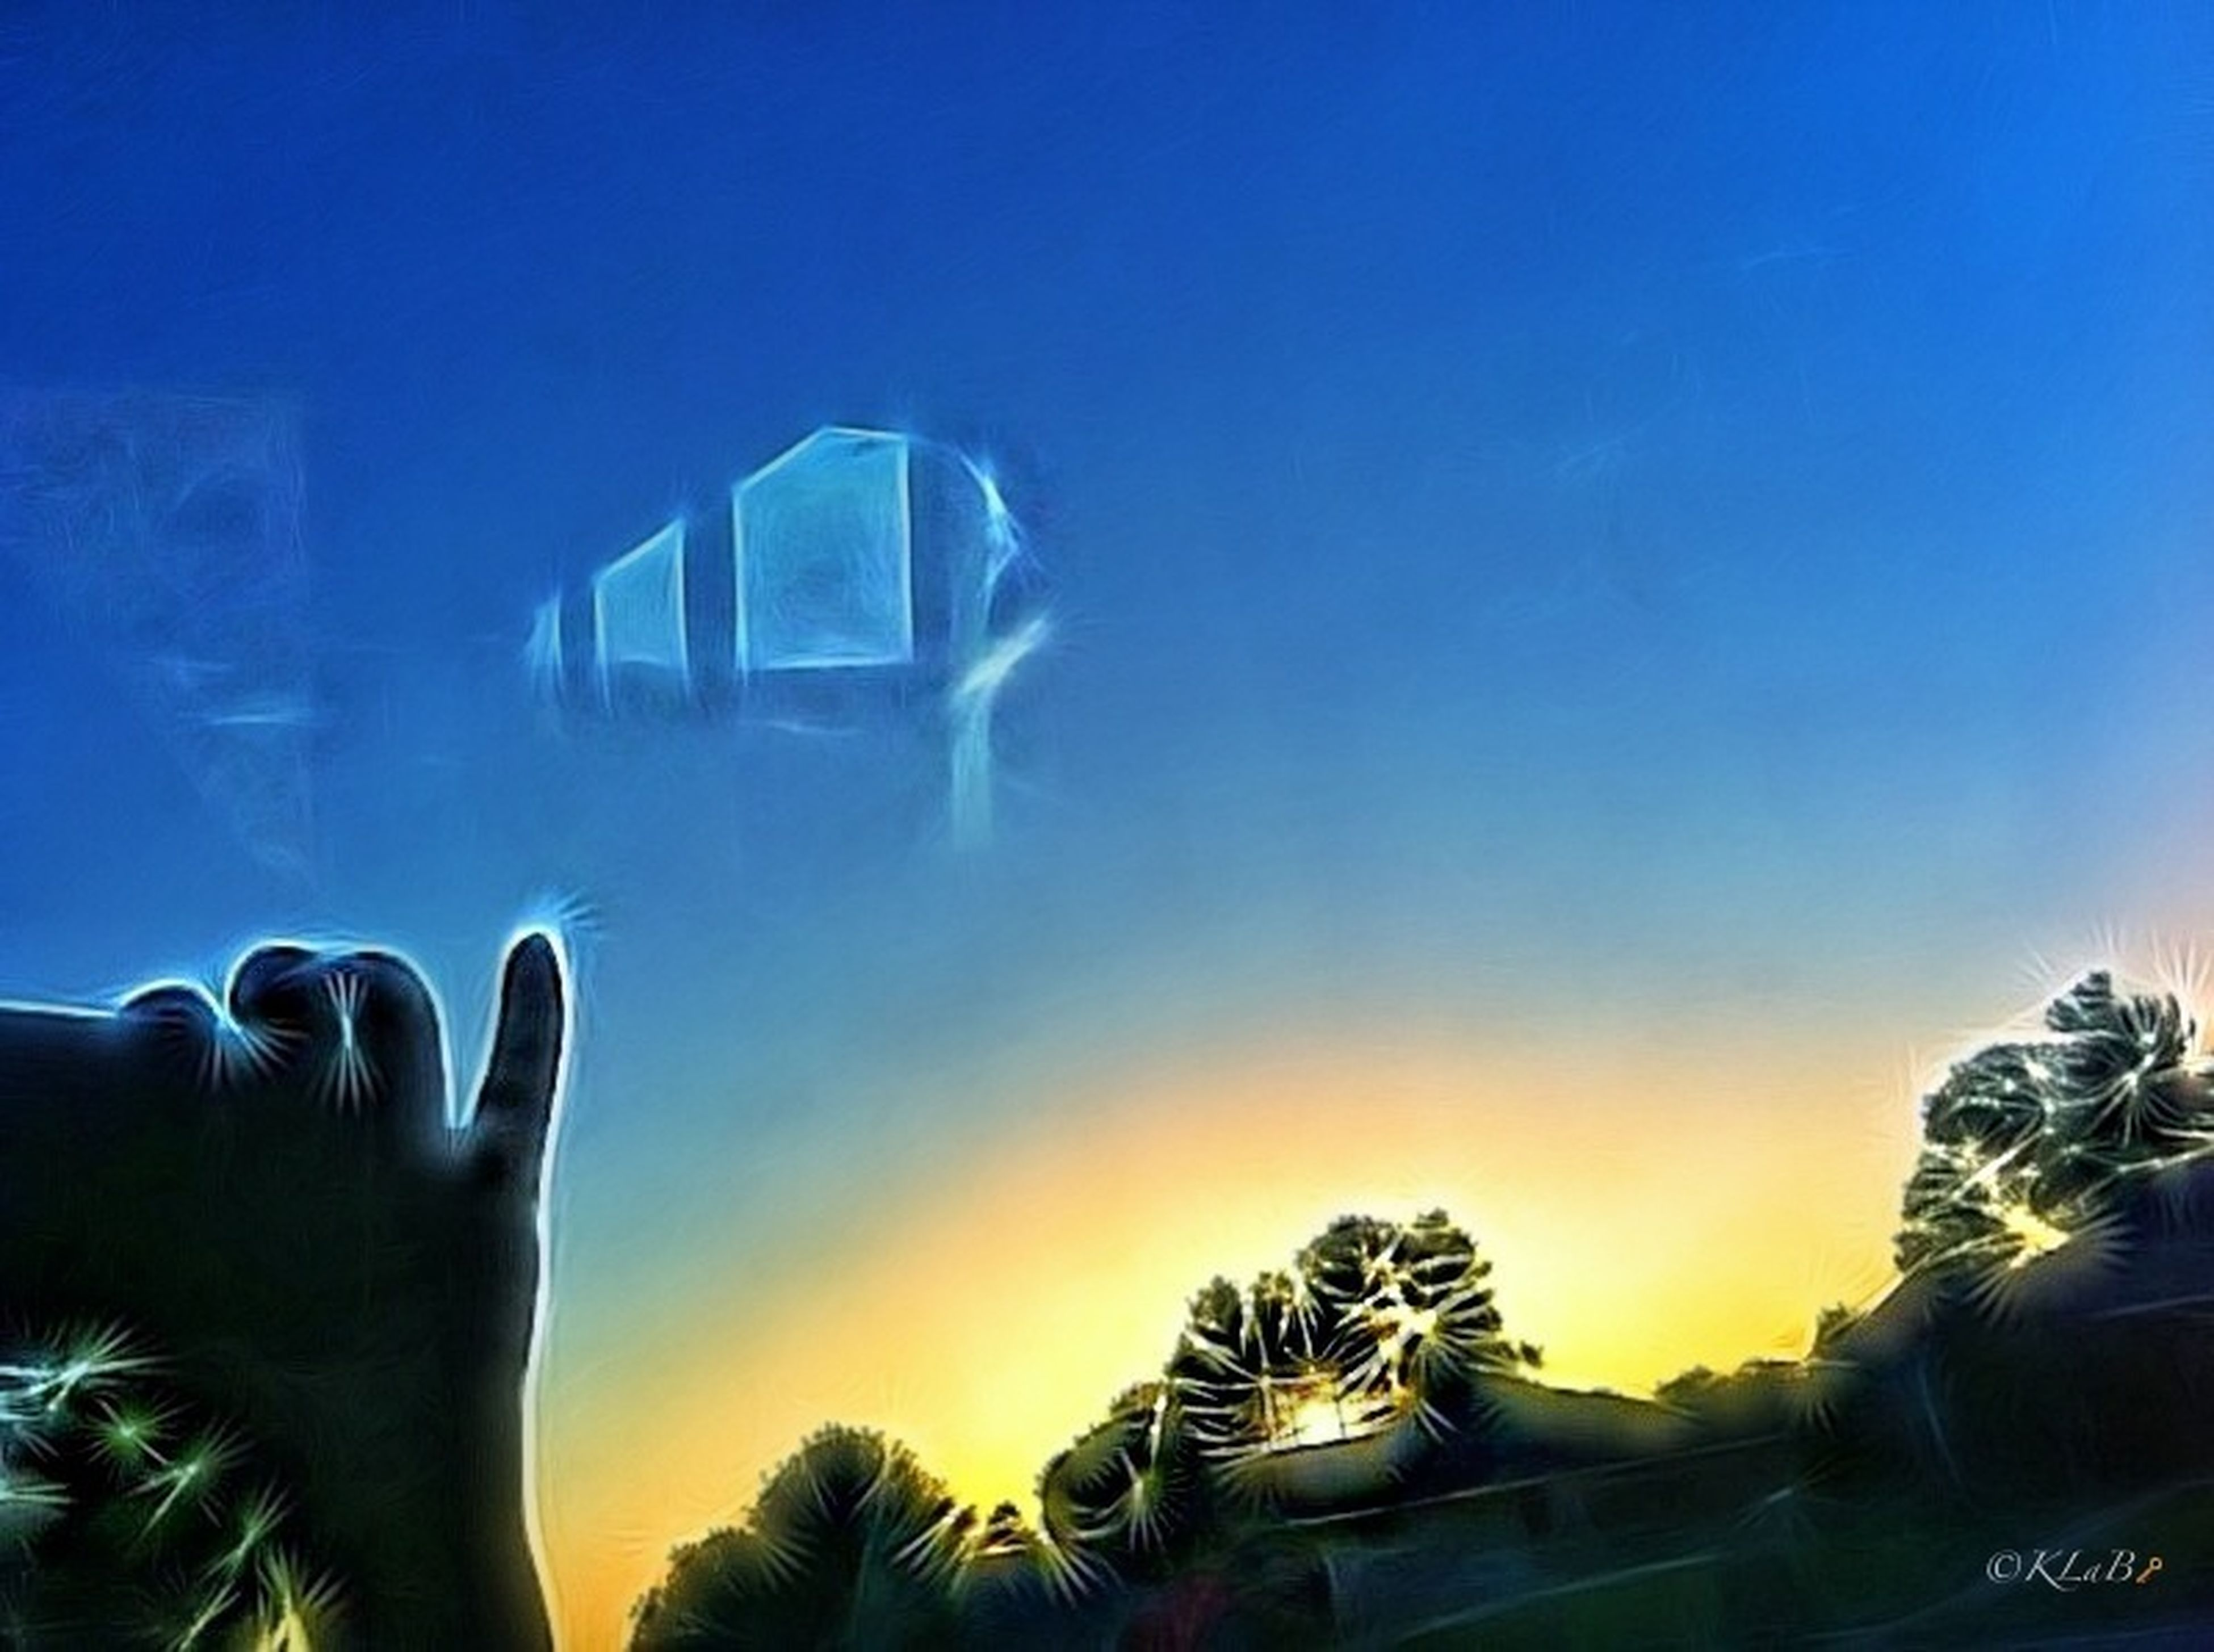 sunset, sky, blue, part of, tree, silhouette, cropped, person, copy space, unrecognizable person, clear sky, architecture, built structure, lifestyles, sunlight, nature, glass - material